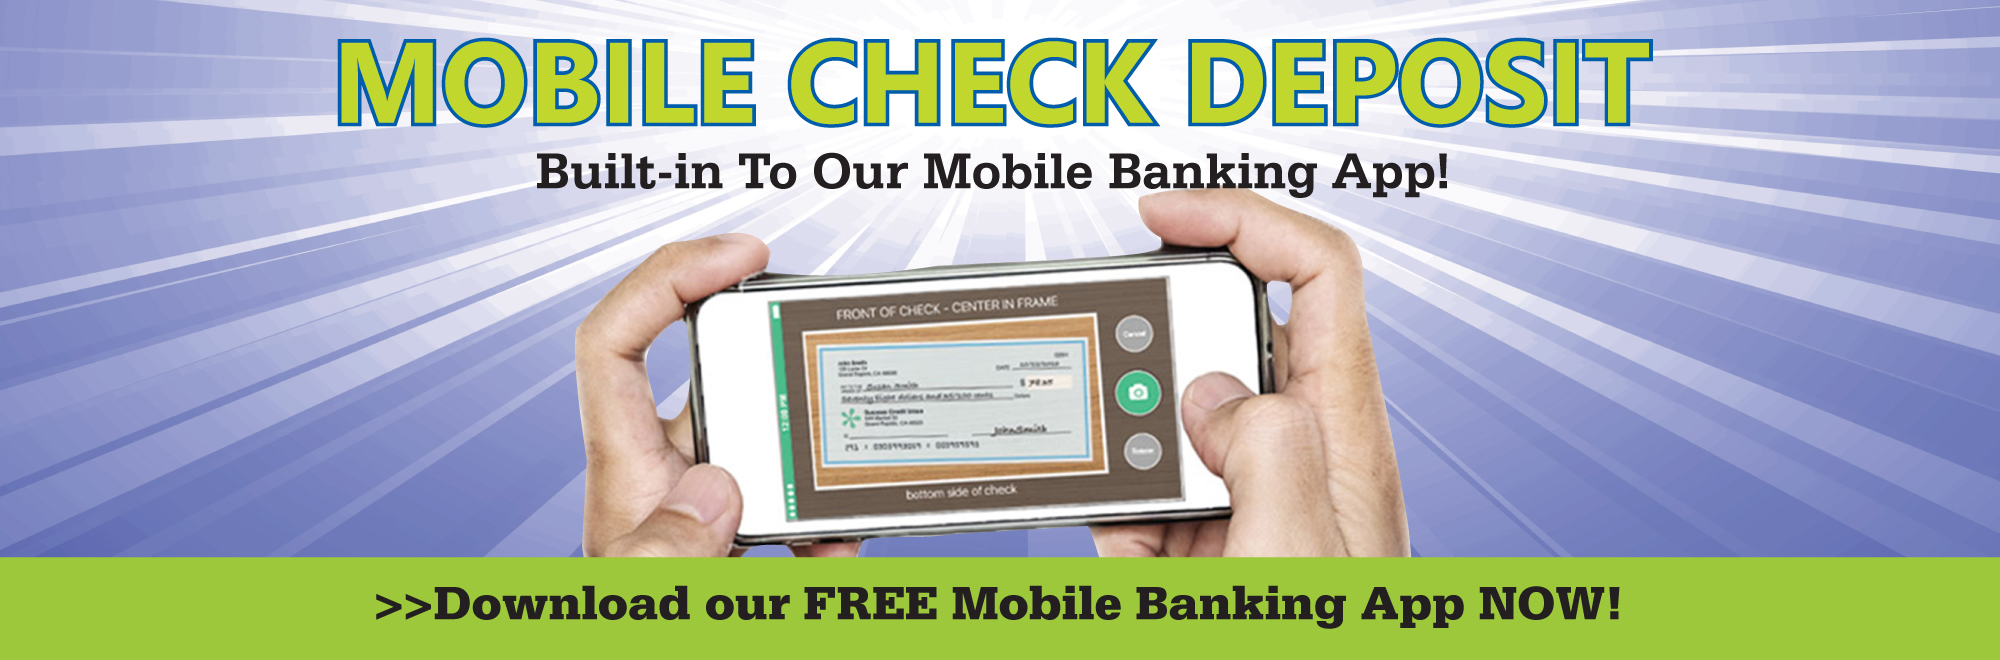 Deposit checks with your mobile phone with our free mobile check deposit service!